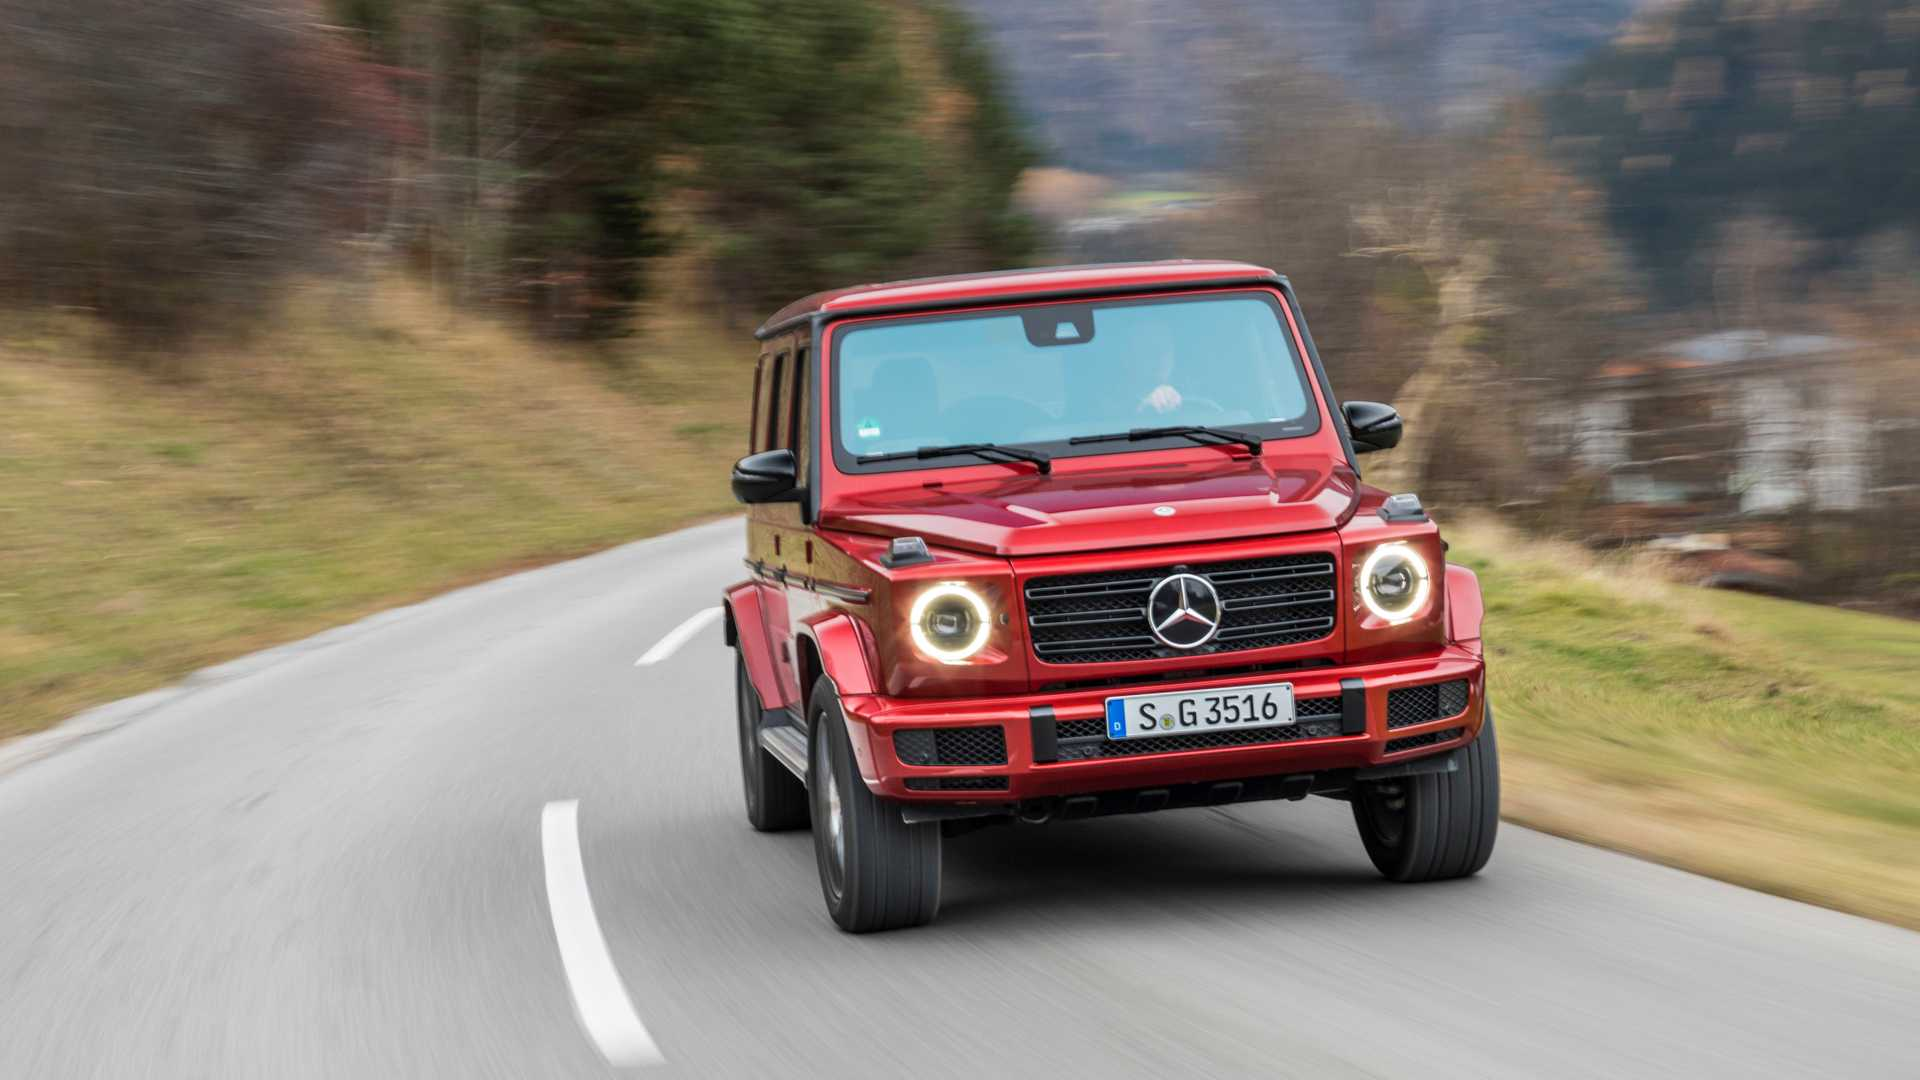 It promises to be a comfortable experience and the most fuel efficient model G-Class ever.